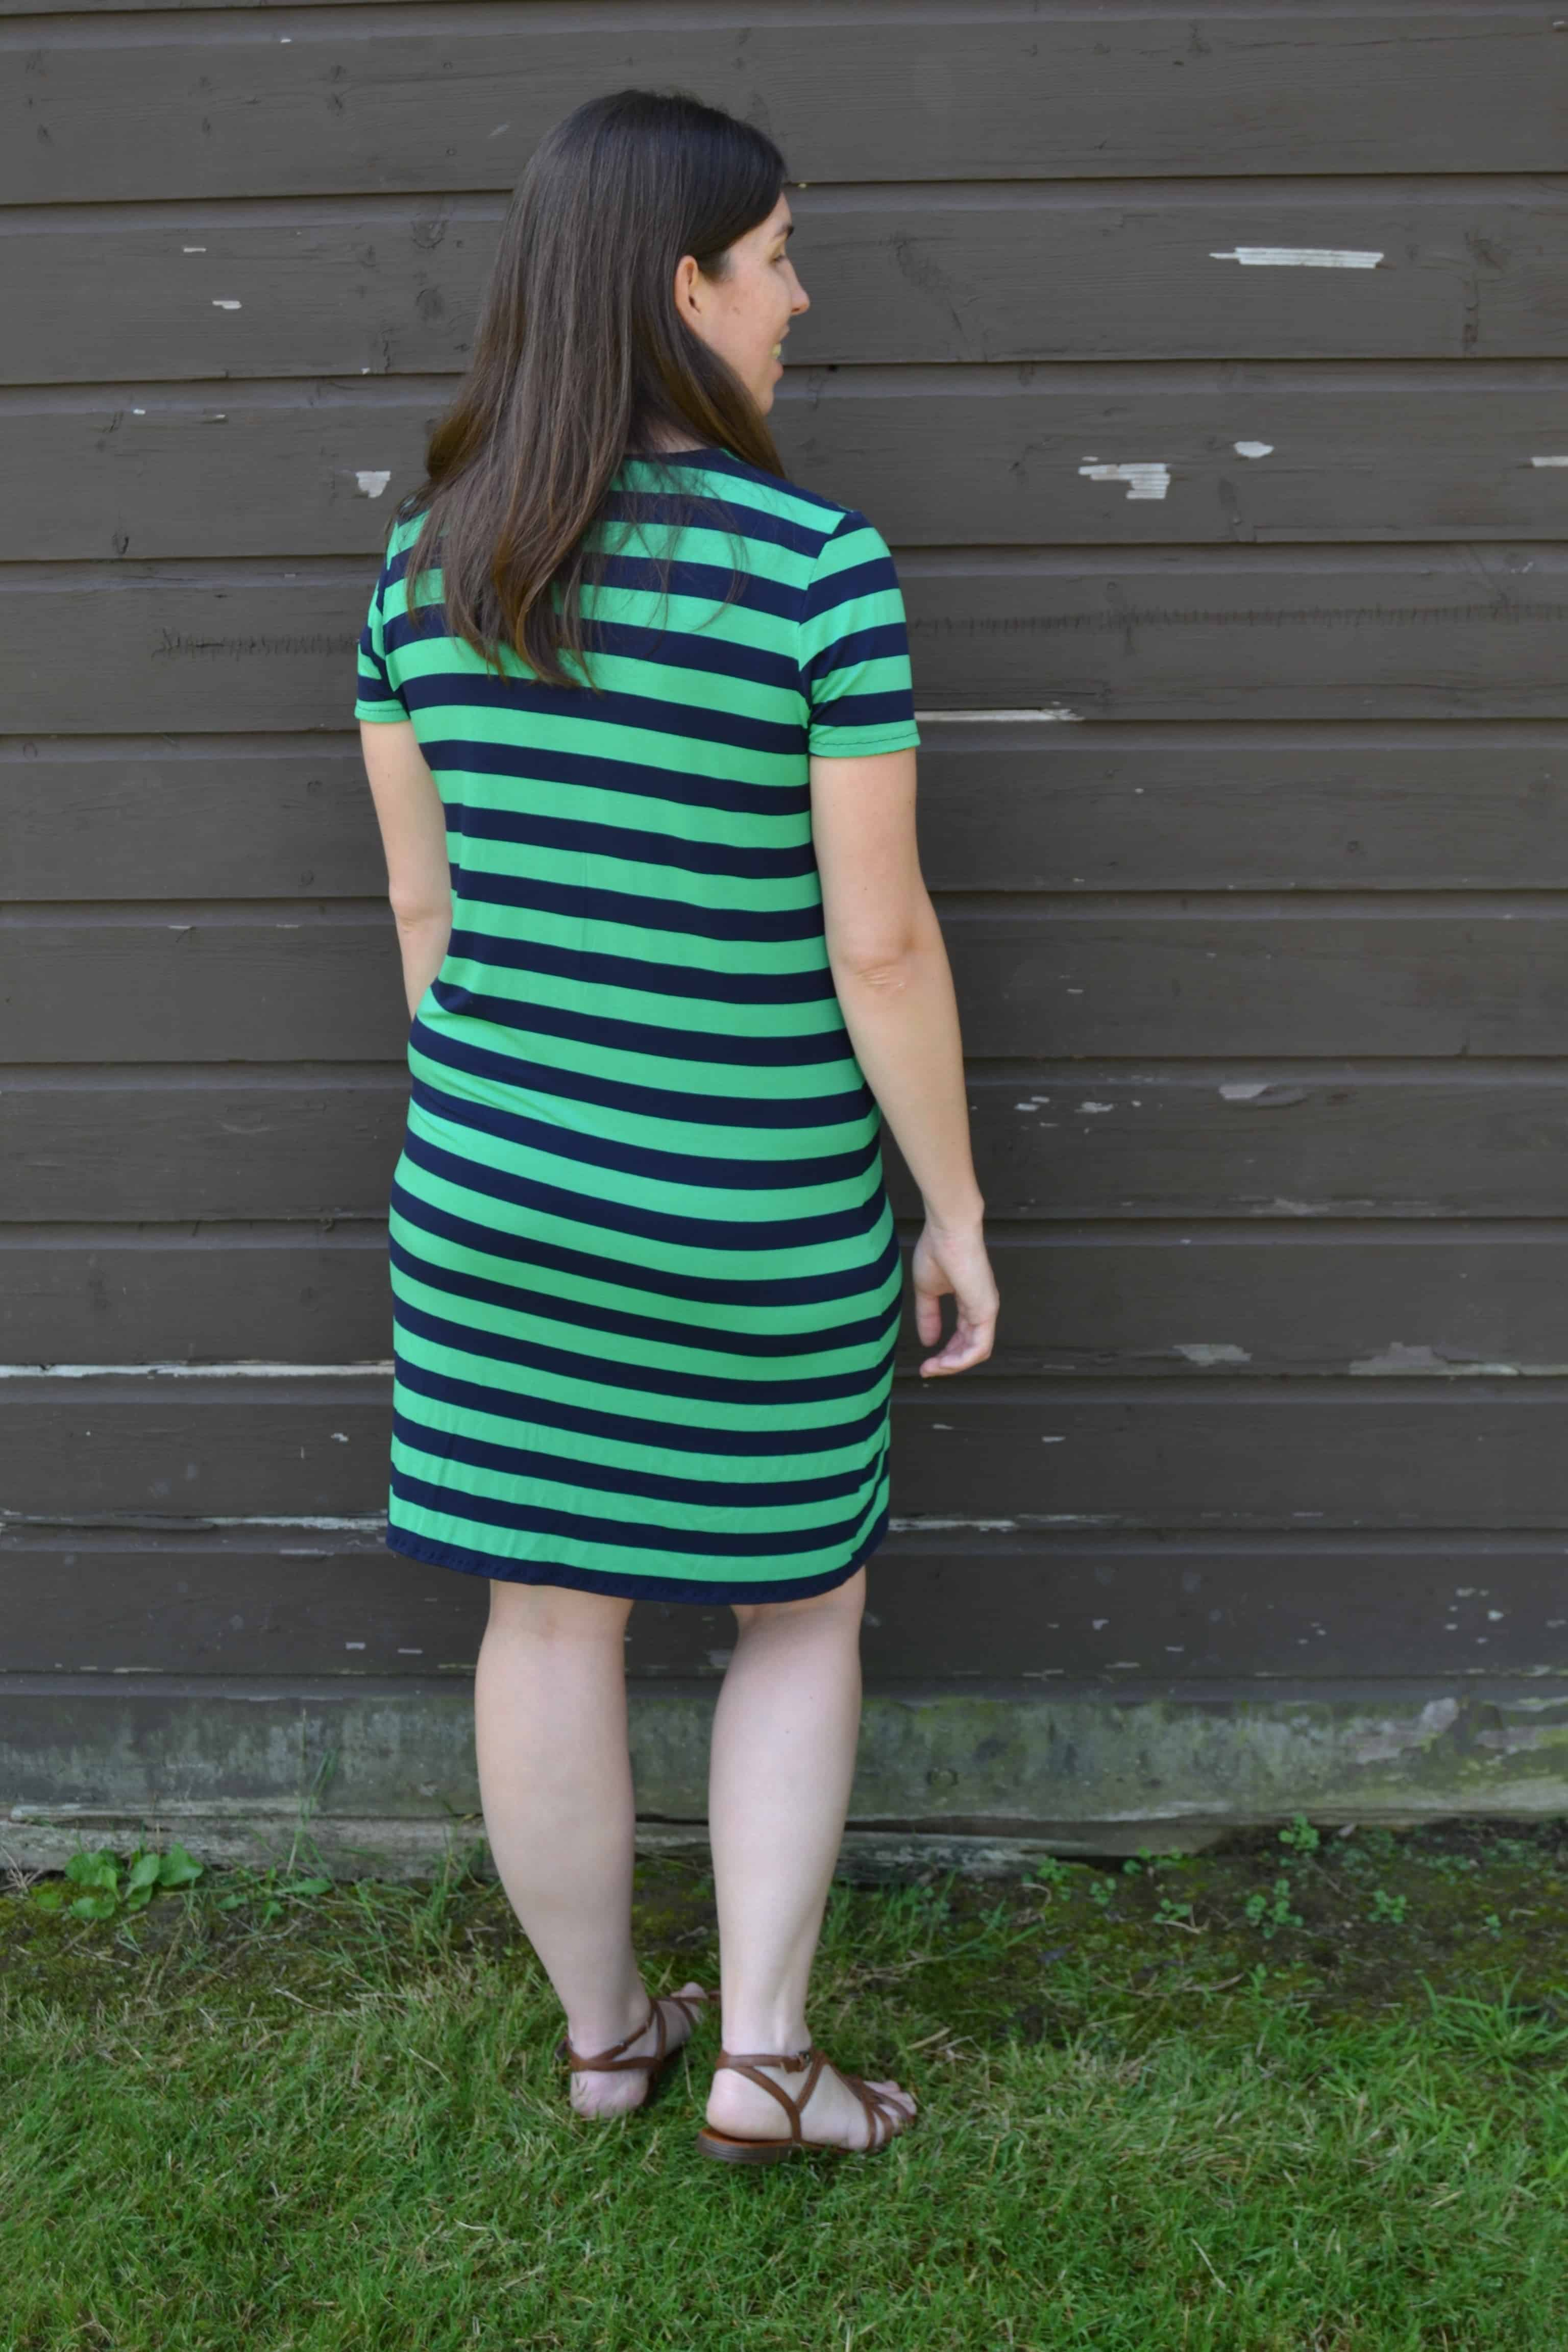 Elegant I Revive My Old Tutorials All The  Shirt As The Bottom Hem Of Your Dress Nice And Easy These Tshirts I Have Been Using Are The Softer, Stretchier Tshirts That Are Usually Made For Women You Know, The Knits Shirts That Are Usually